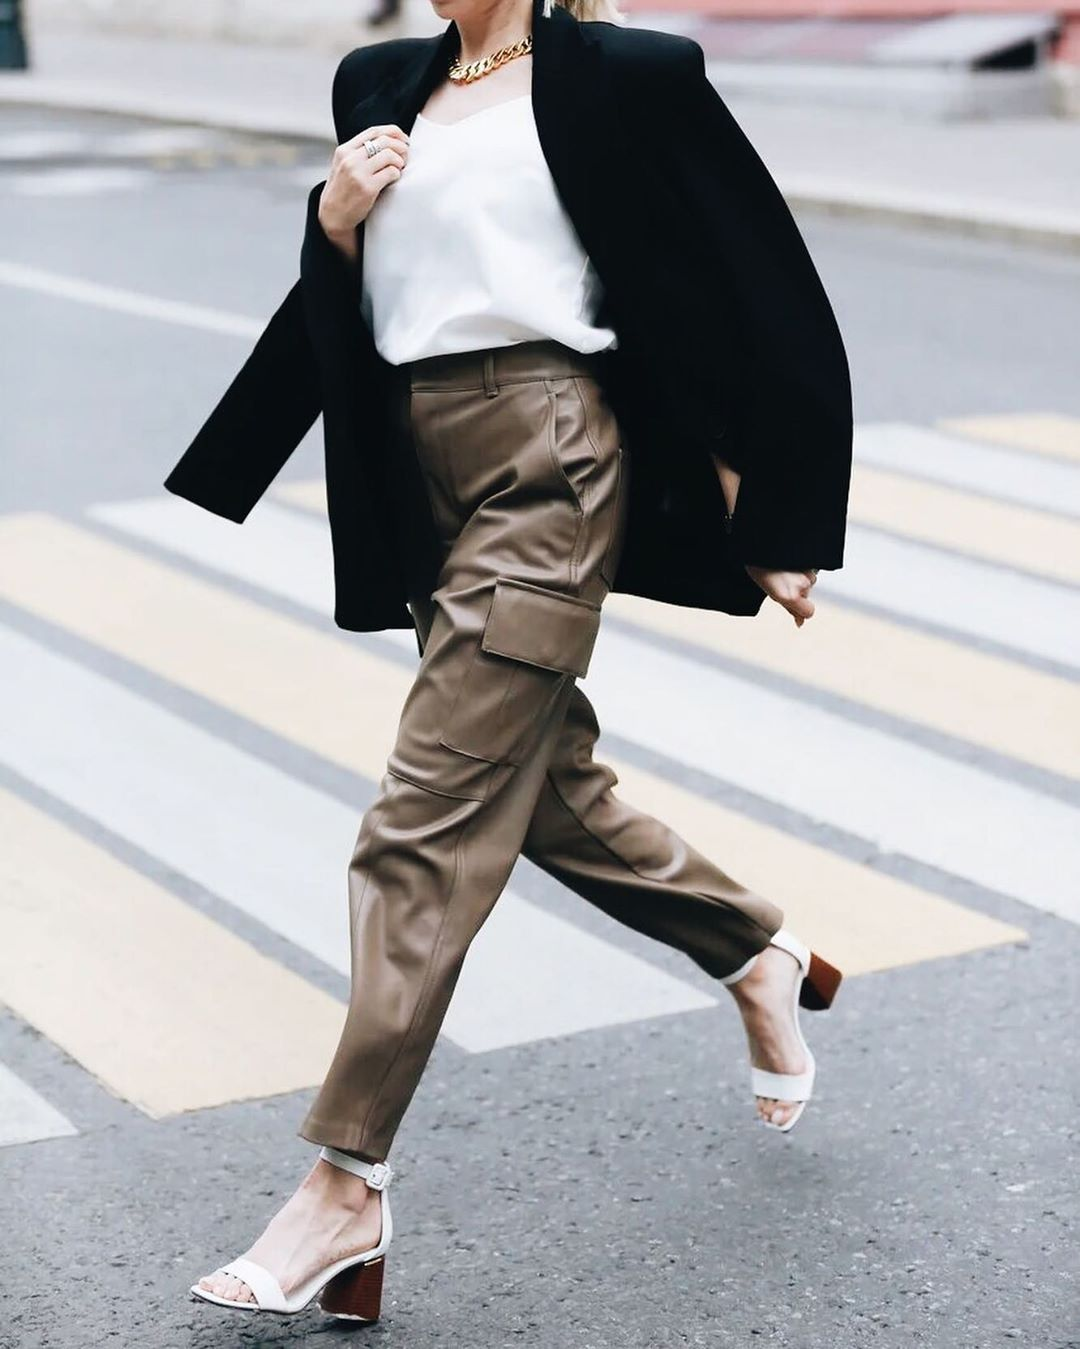 Cargo Pants Prove Their Cool Factor for Fall